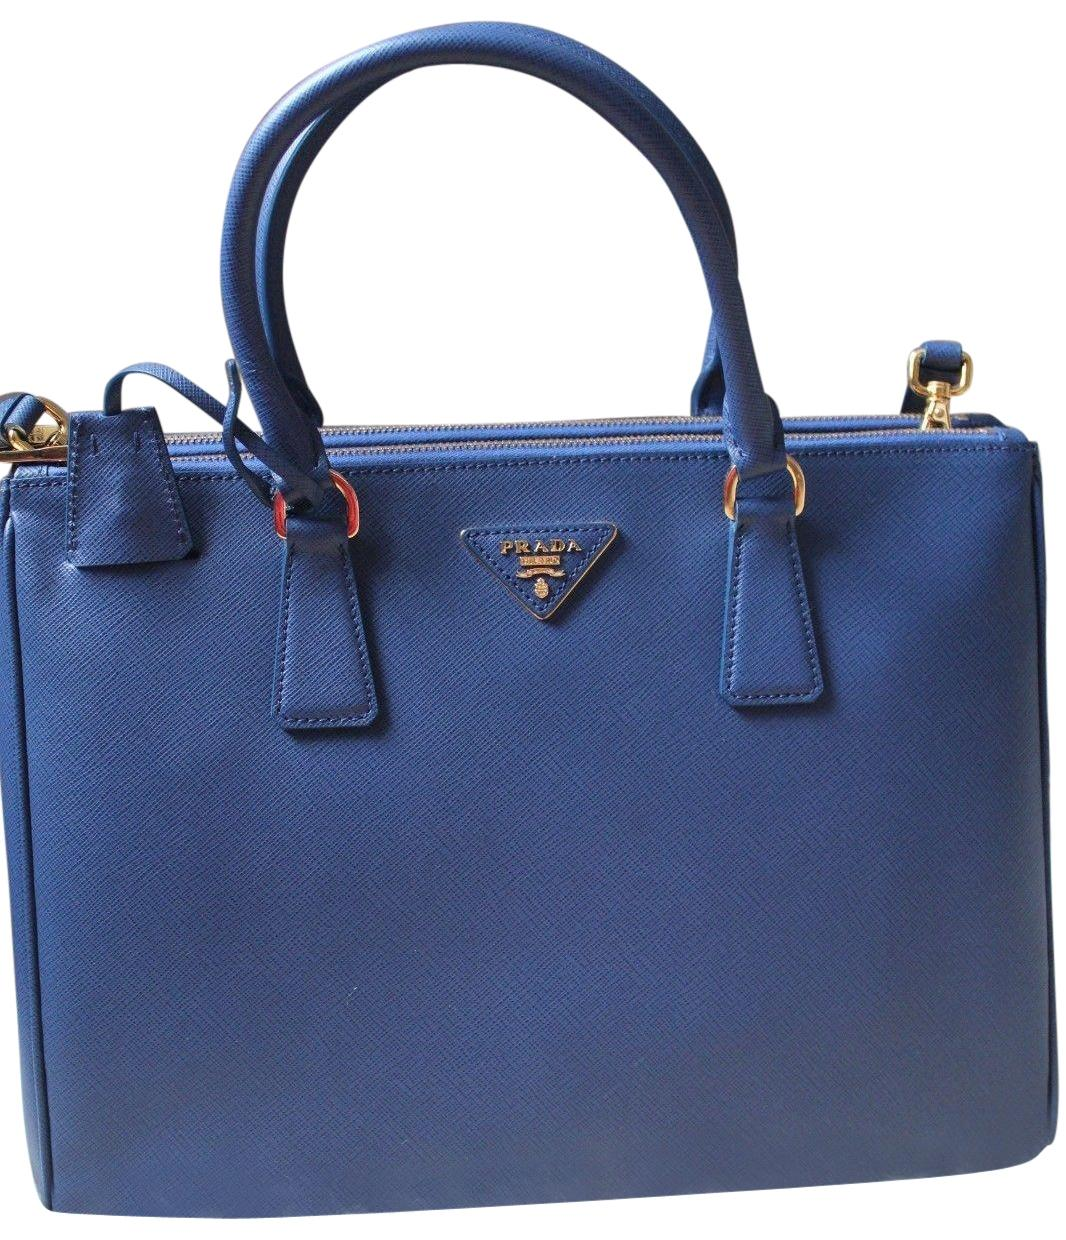 a11f16e0067d ... amazon prada black saffiano double zip leather galleria tote in cornflower  blue 49ce6 baea6